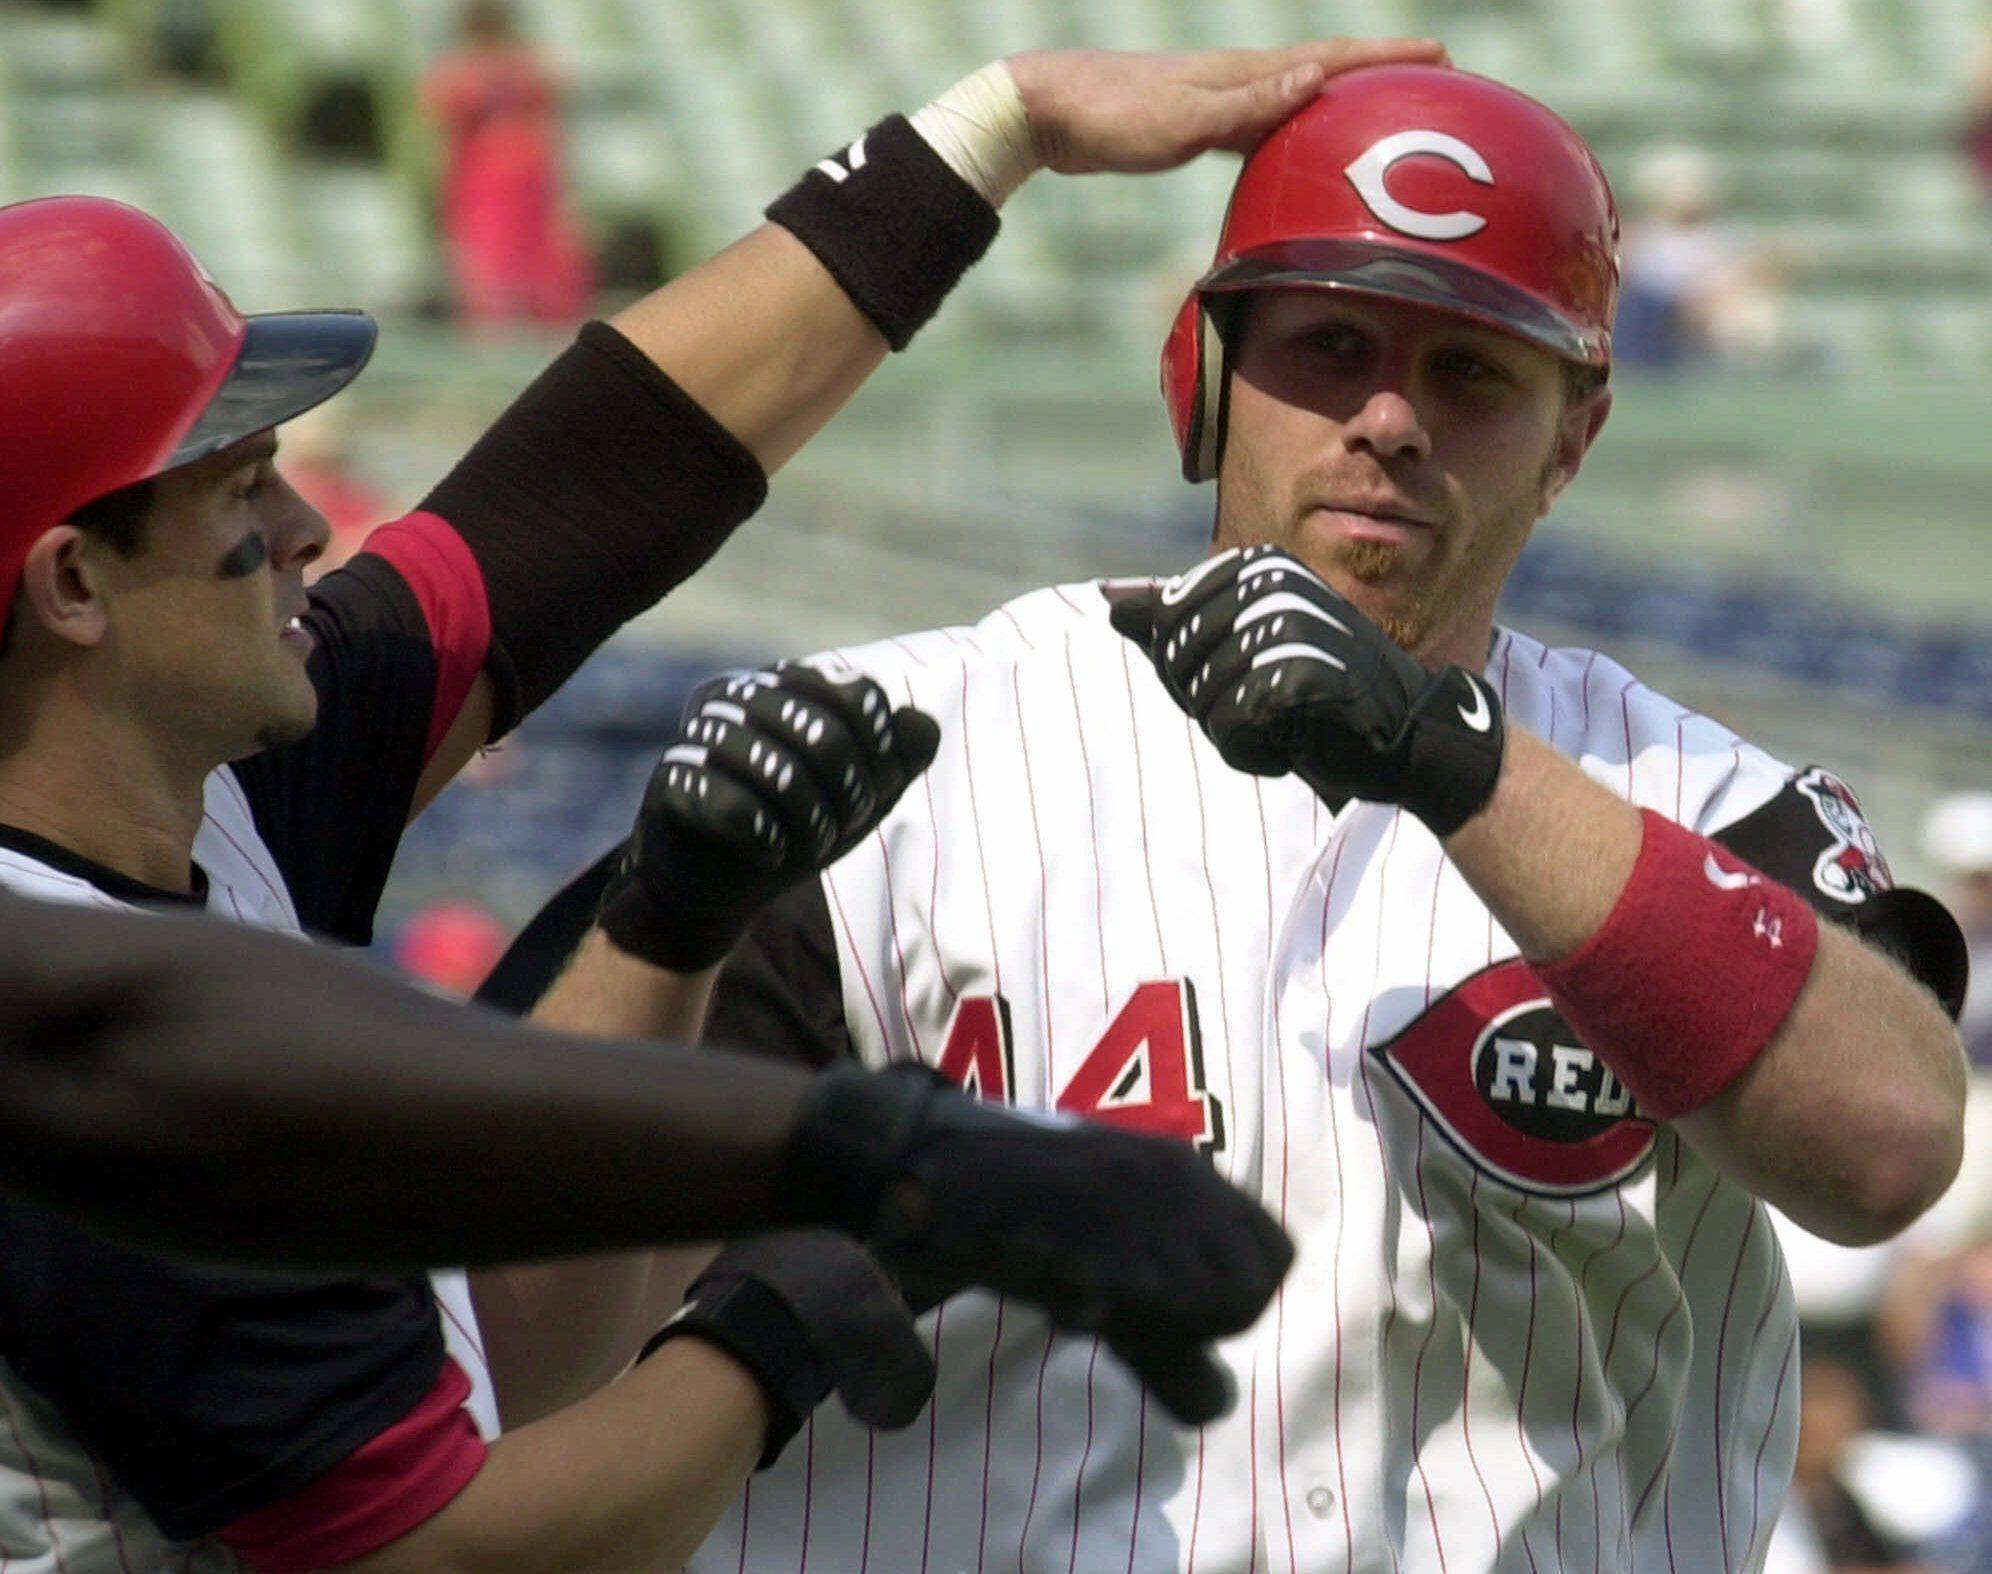 Cincinnati Reds' Adam Dunn, right, is congratulated by teammate Aaron Boone, left, after Dunn hit a two-run home run in the ninth inning against the Chicago Cubs, Thursday, Sept. 20, 2001, in Cincinnati. Chicago won 6-5.